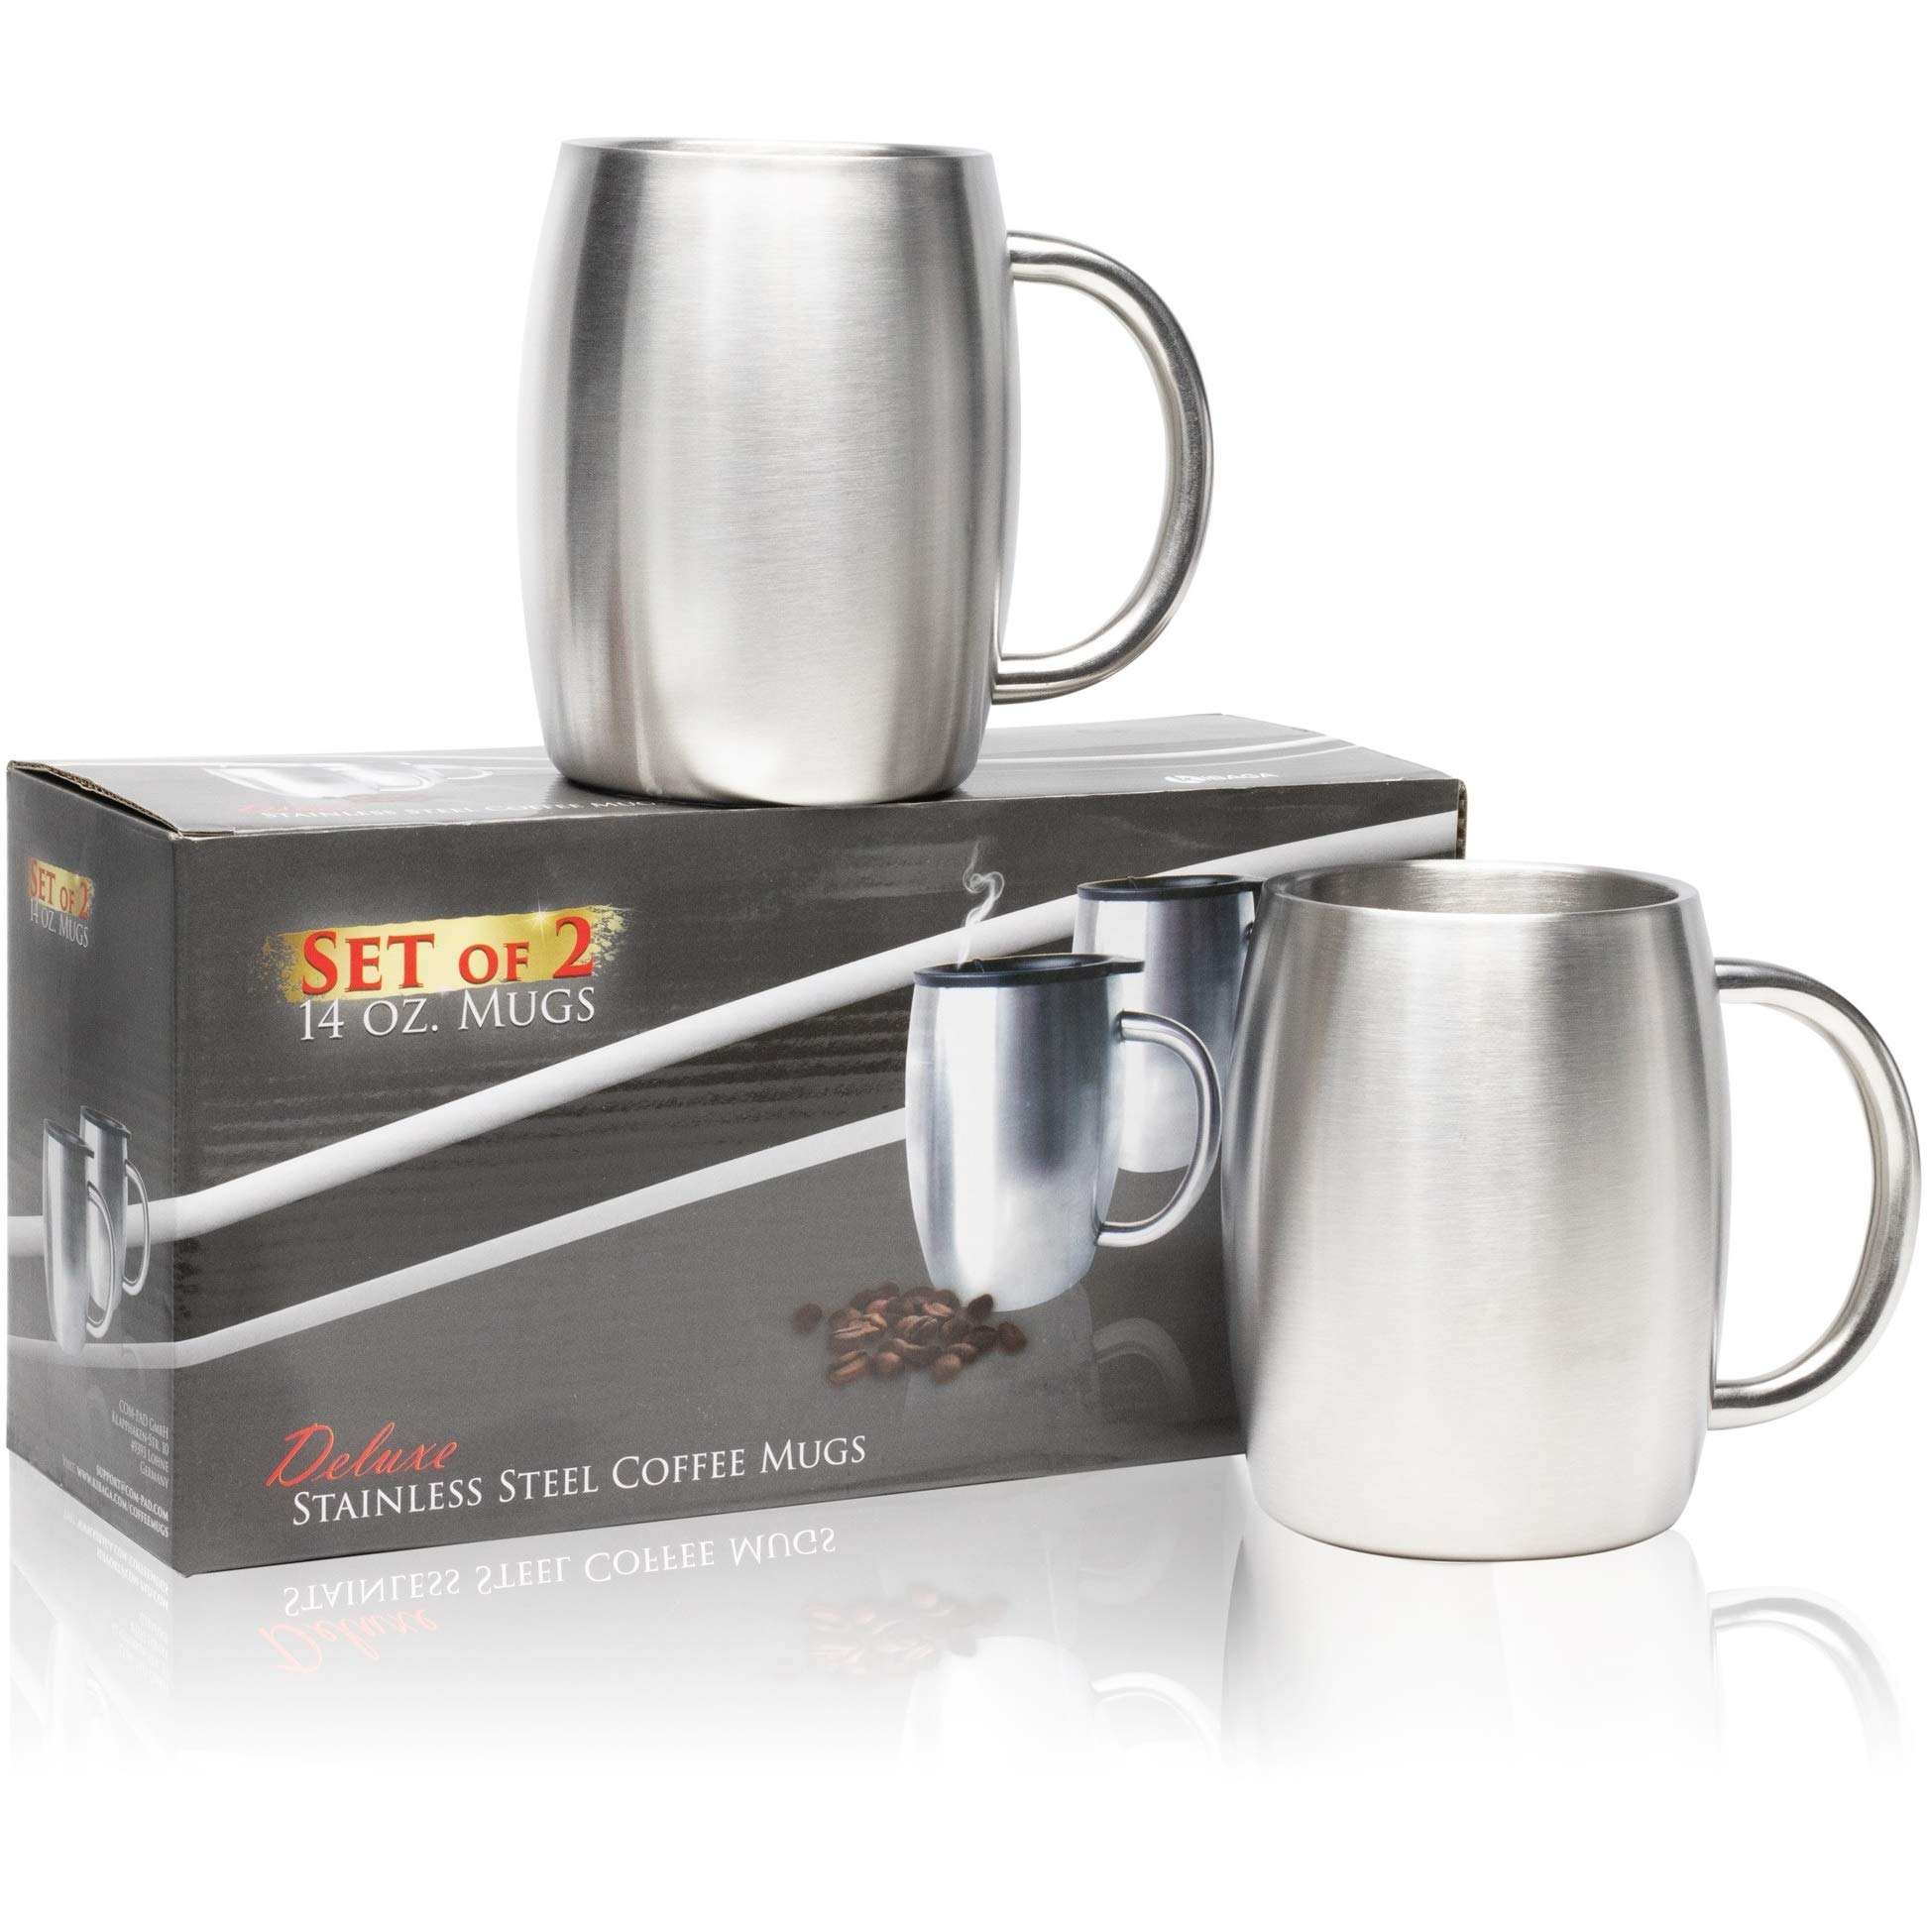 Stainless Steel Coffee Mug With Lid Set Of 2 - Double Wall Insulated Coffee Mugs - 14 Oz Stainless Steel Coffee Cups - Perfect For Hot & Cold Drinks